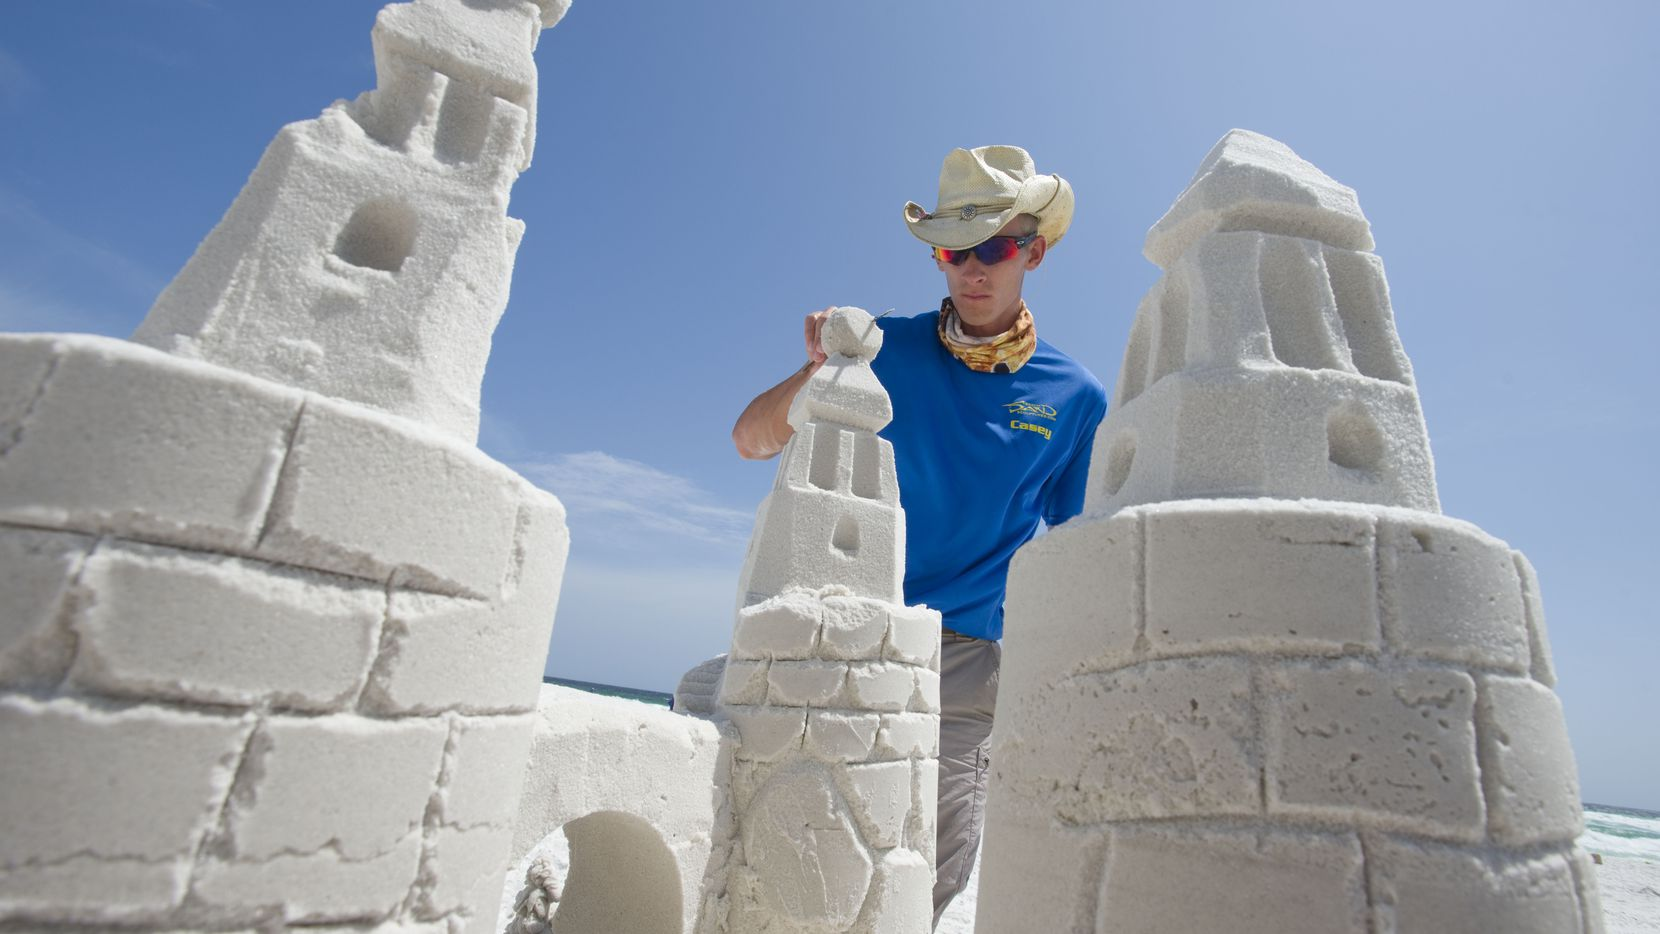 Casey Fabianski with Beach Sand Sculptures puts the finishing touches on a sand castle at the beach in Destin, Florida on Wednesday, June 11, 2014. (AP Photo/Northwest Florida Daily News, Devon Ravine)